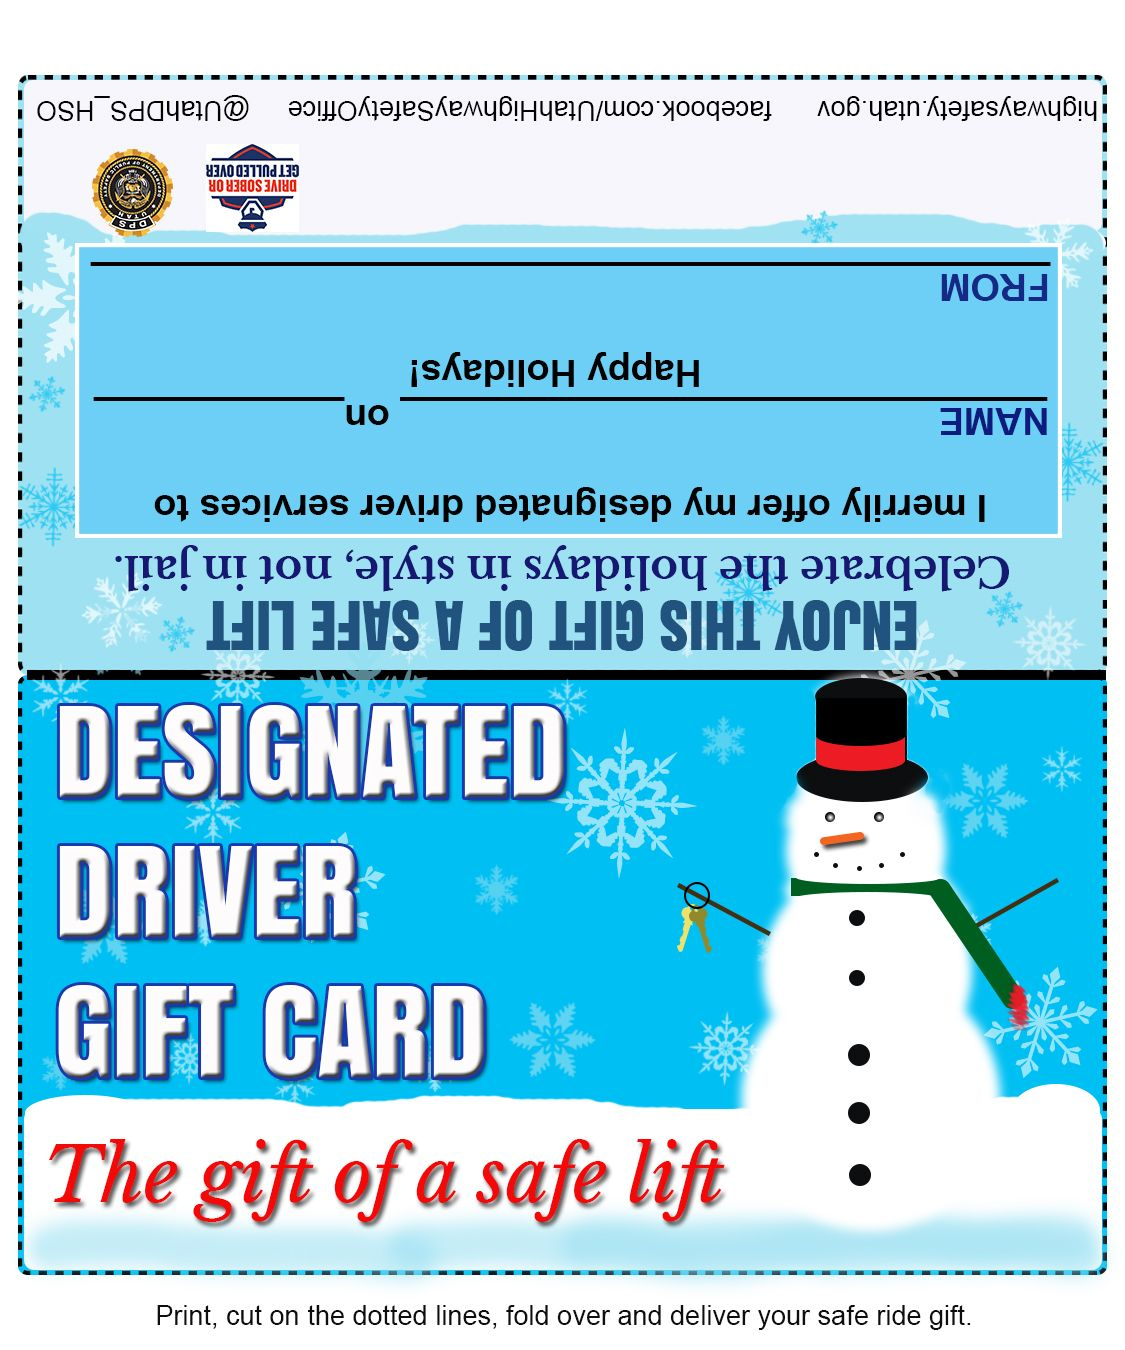 Give the gift of a safe lift print your designated driver